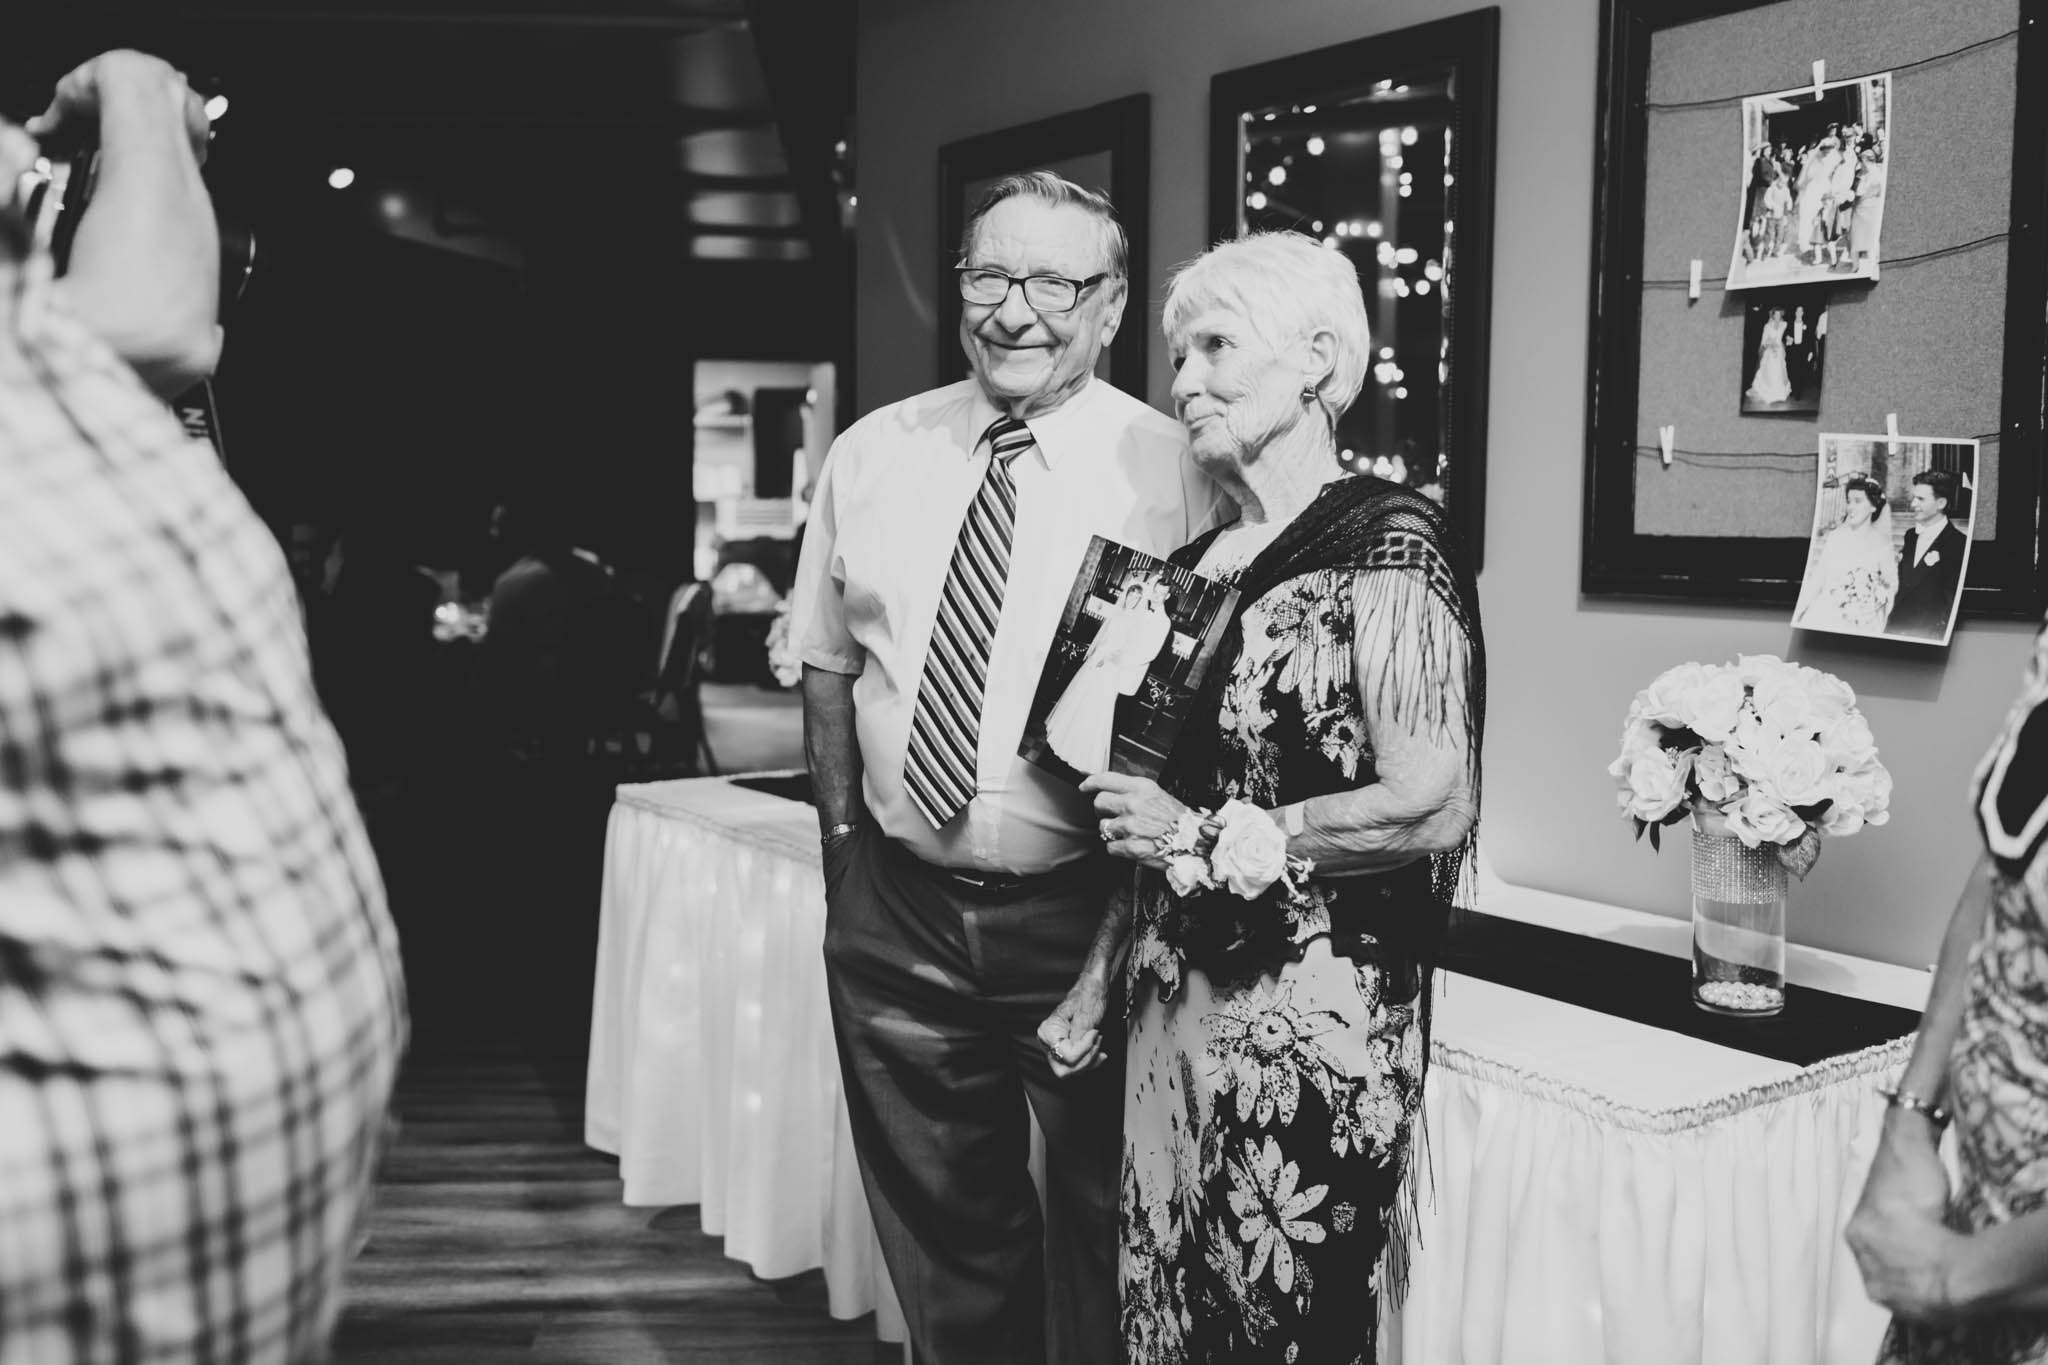 Jillian VanZytveld Photography - Grand Rapids Lifestyle Wedding Photography - 185.jpg